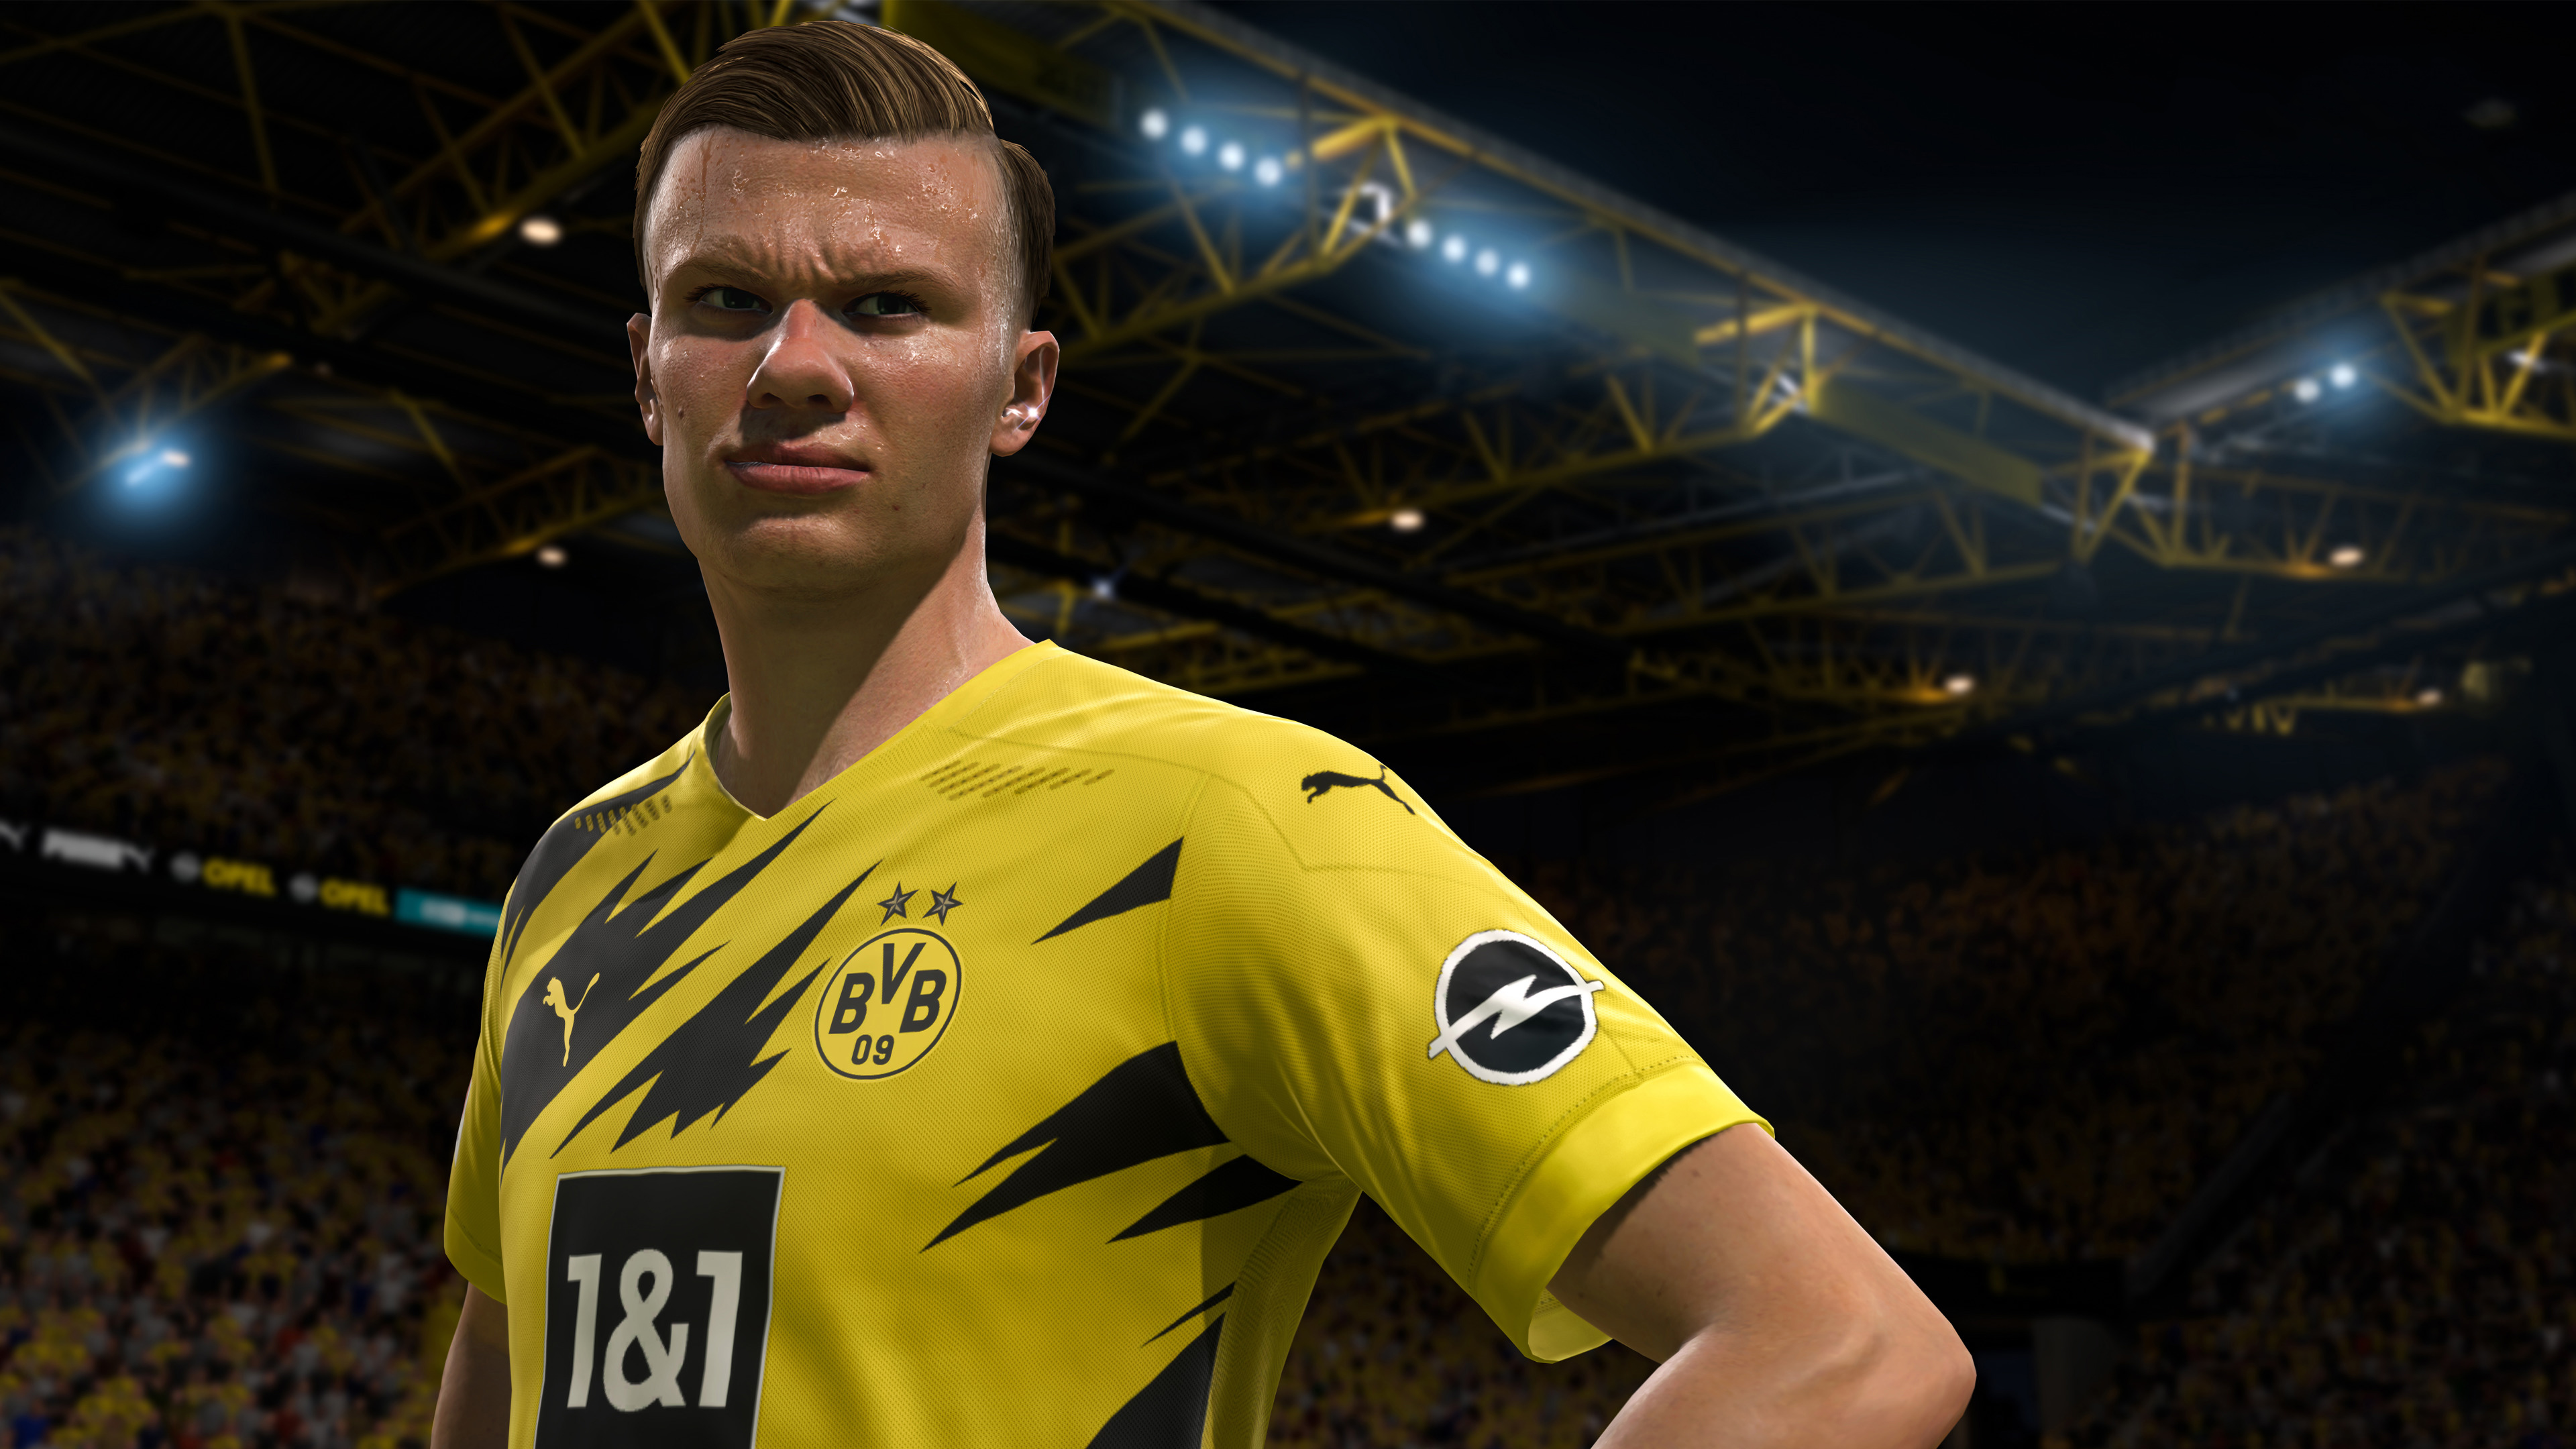 Erling Braut Haland Fifa 21 Hd Games 4k Wallpapers Images Backgrounds Photos And Pictures